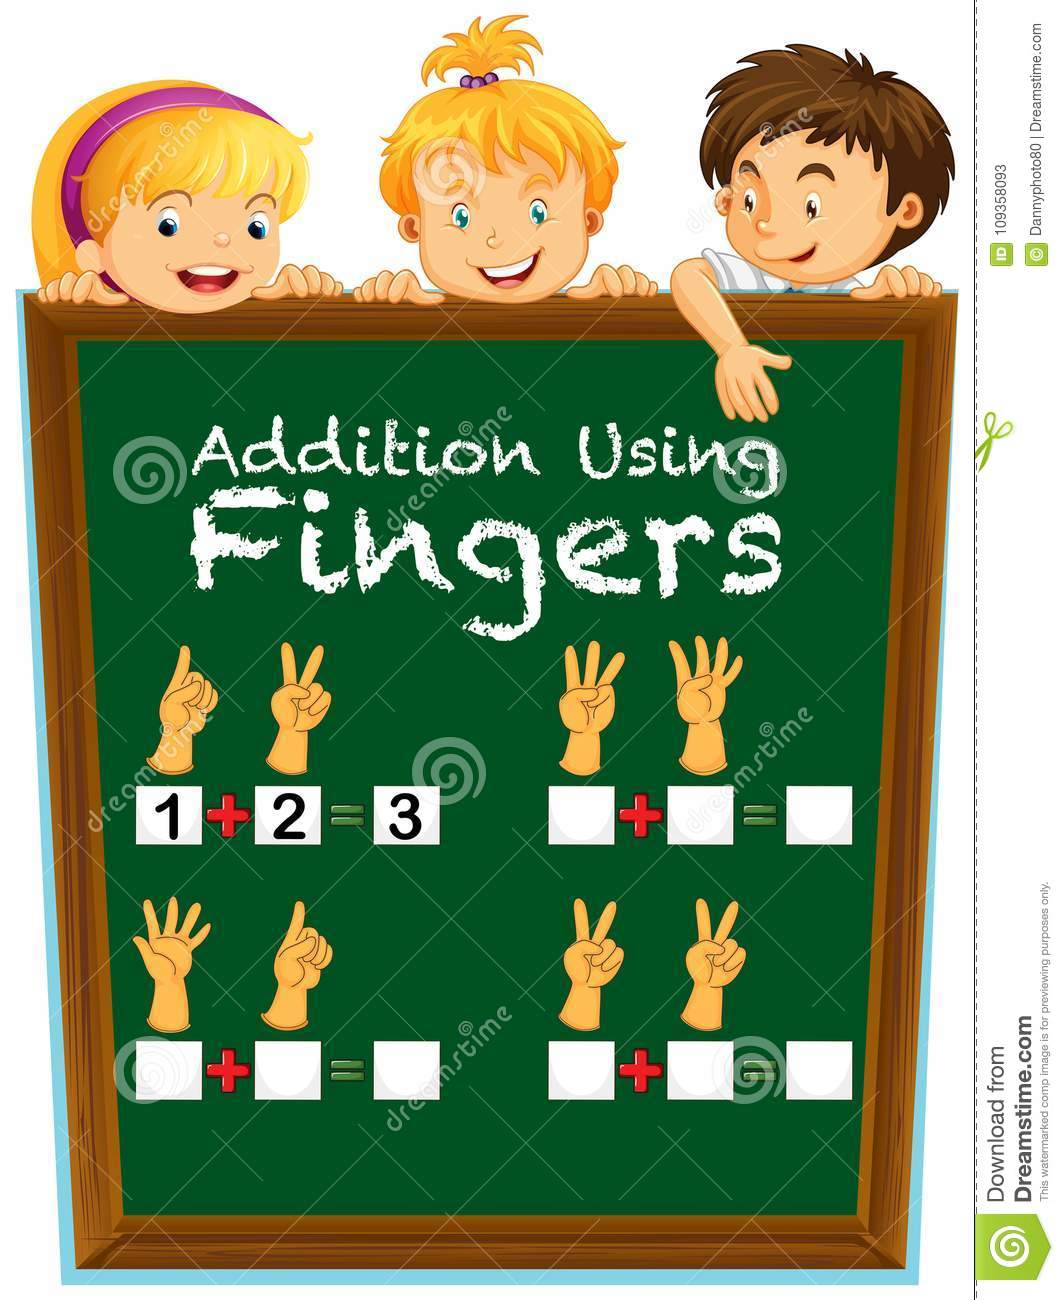 Math Worksheet With Kids And Question On Board Stock